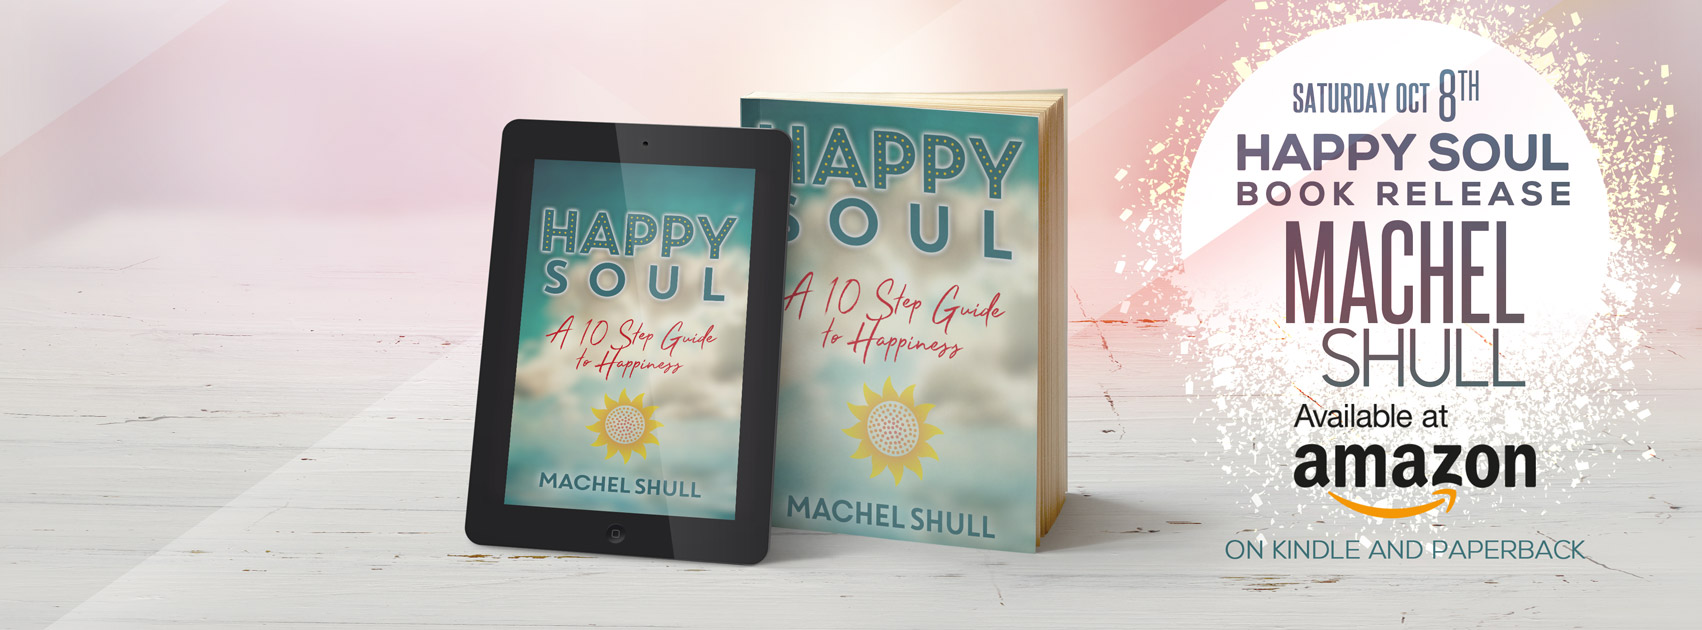 Machel Shull, Happy Soul Book